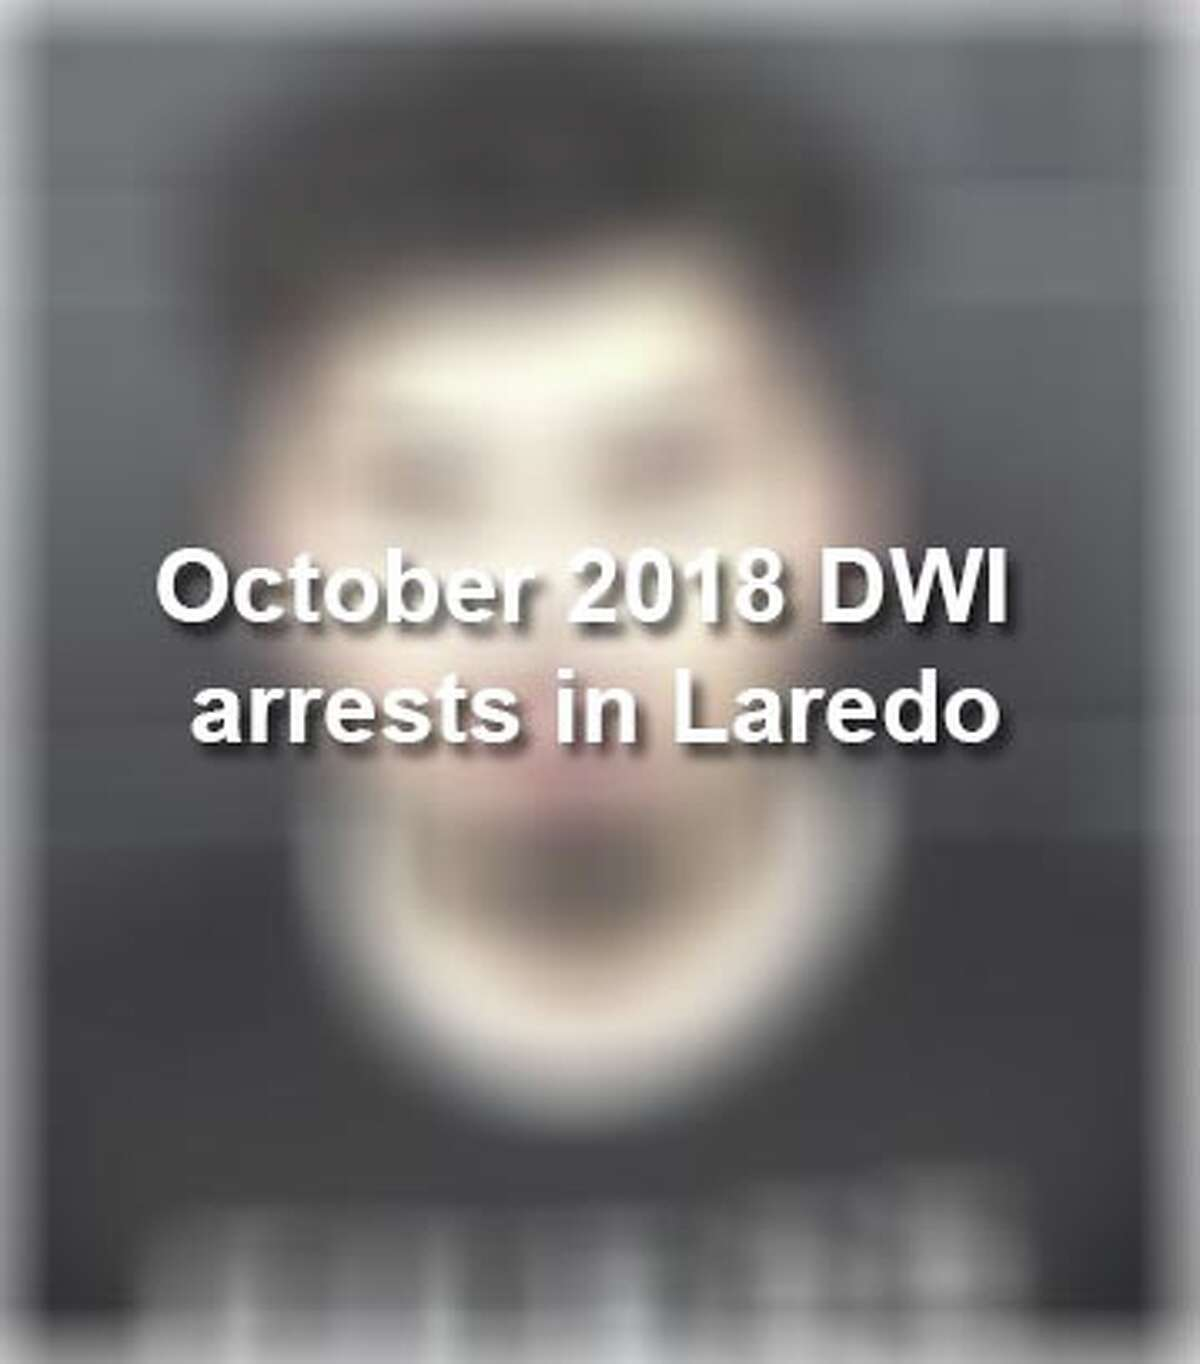 Keep scrolling to see the 67 individuals who were arrested on DWI charges in October, according to the Laredo Police Department.